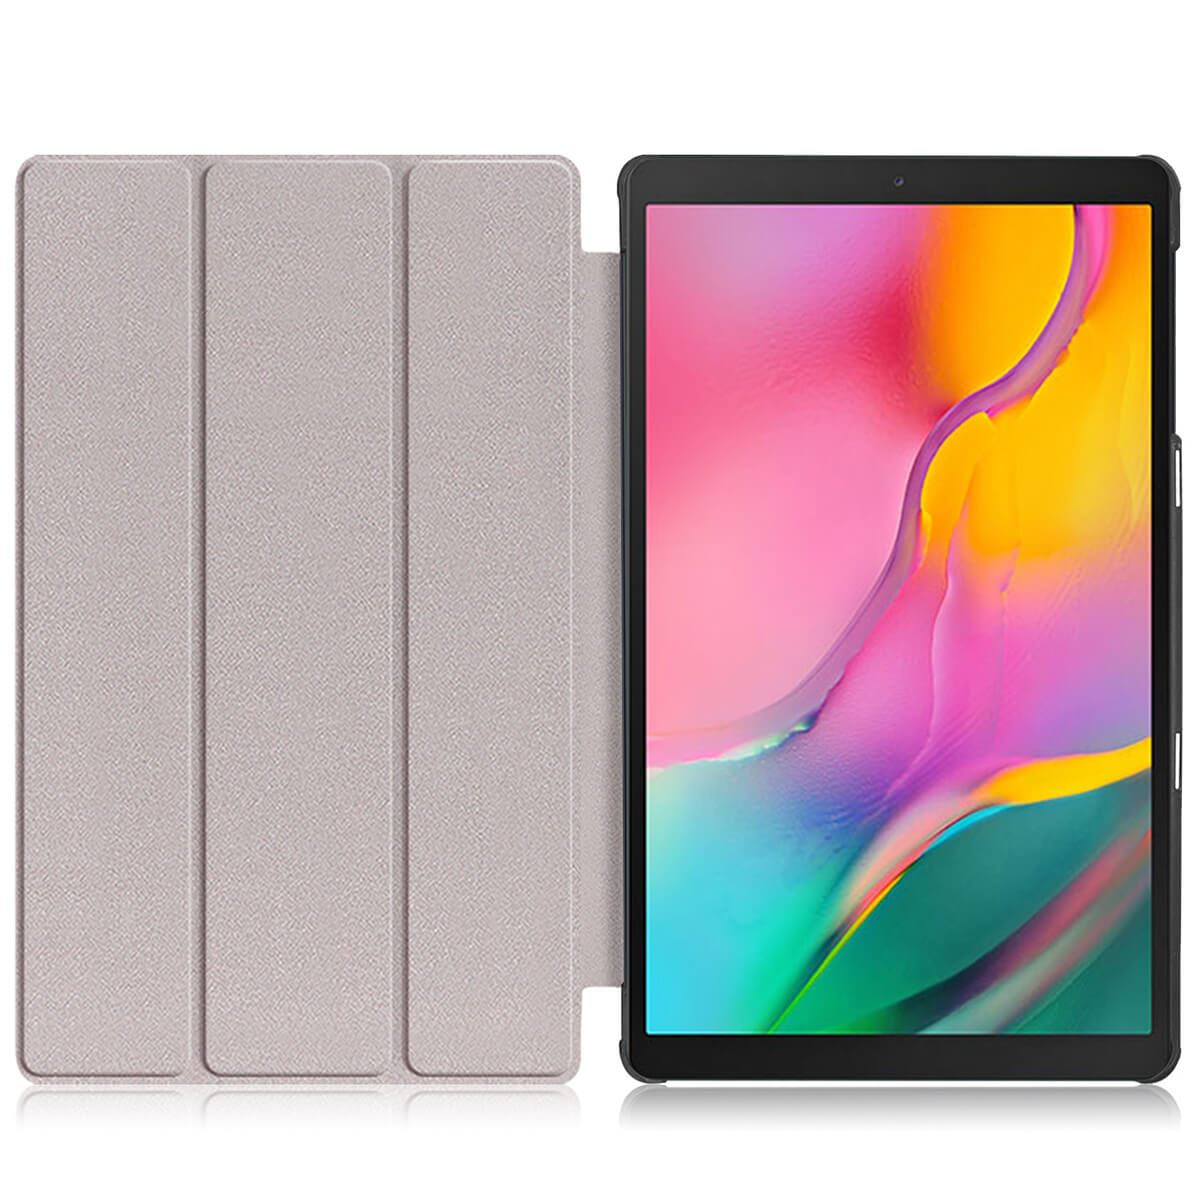 Flip-Cover-Trifold-Case-For-T510-T515-Samsung-Galaxy-Tab-A-2019-10-1-Full-Body thumbnail 9